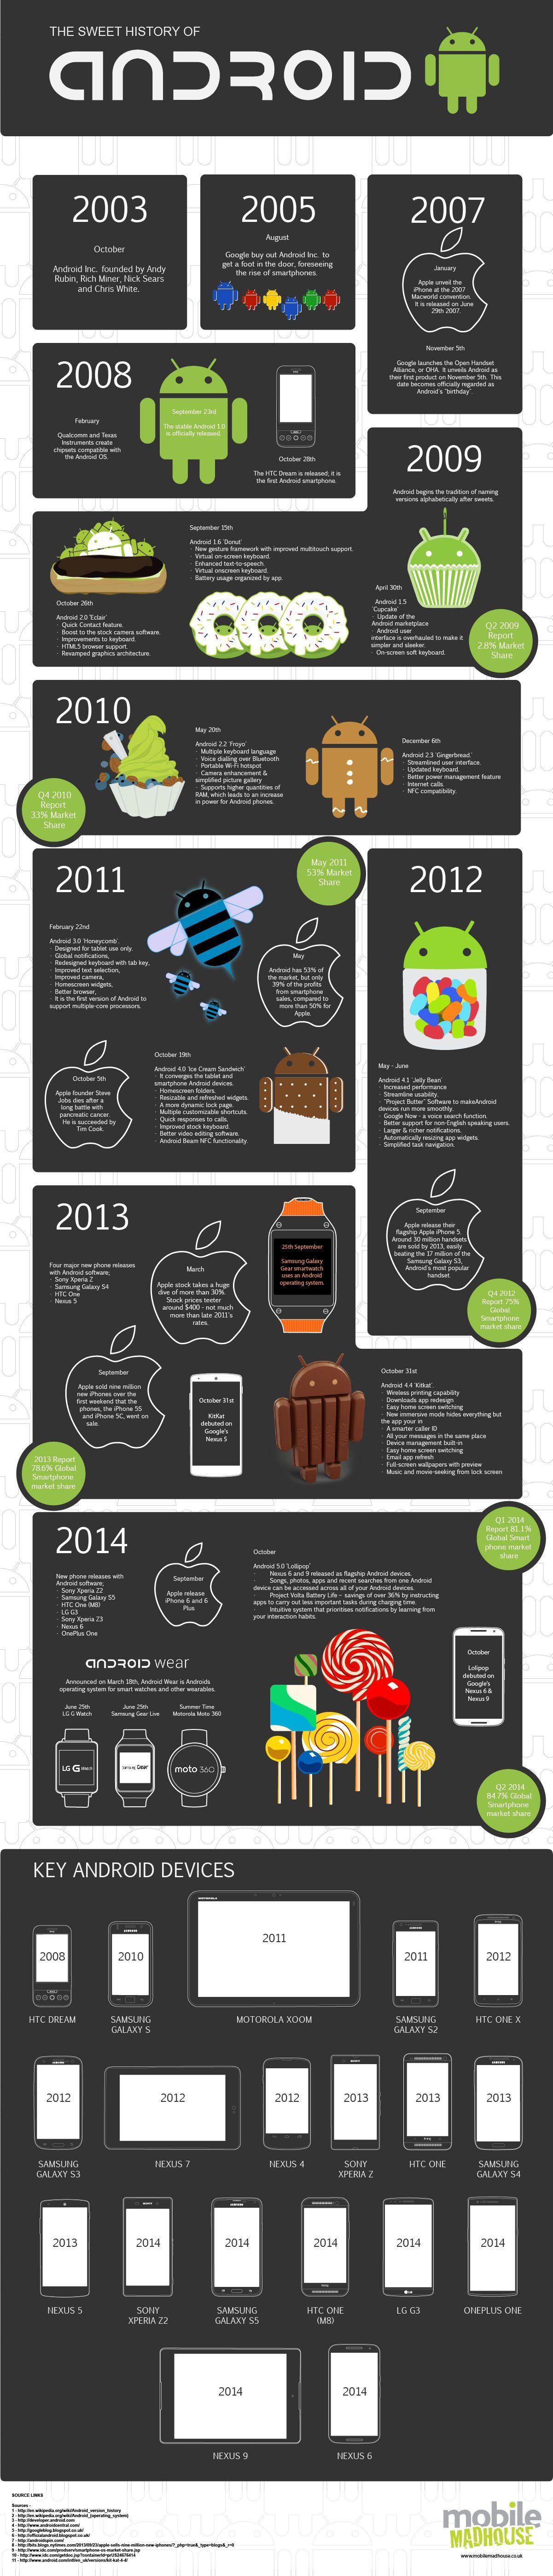 History-oF-Android-2014-Q4